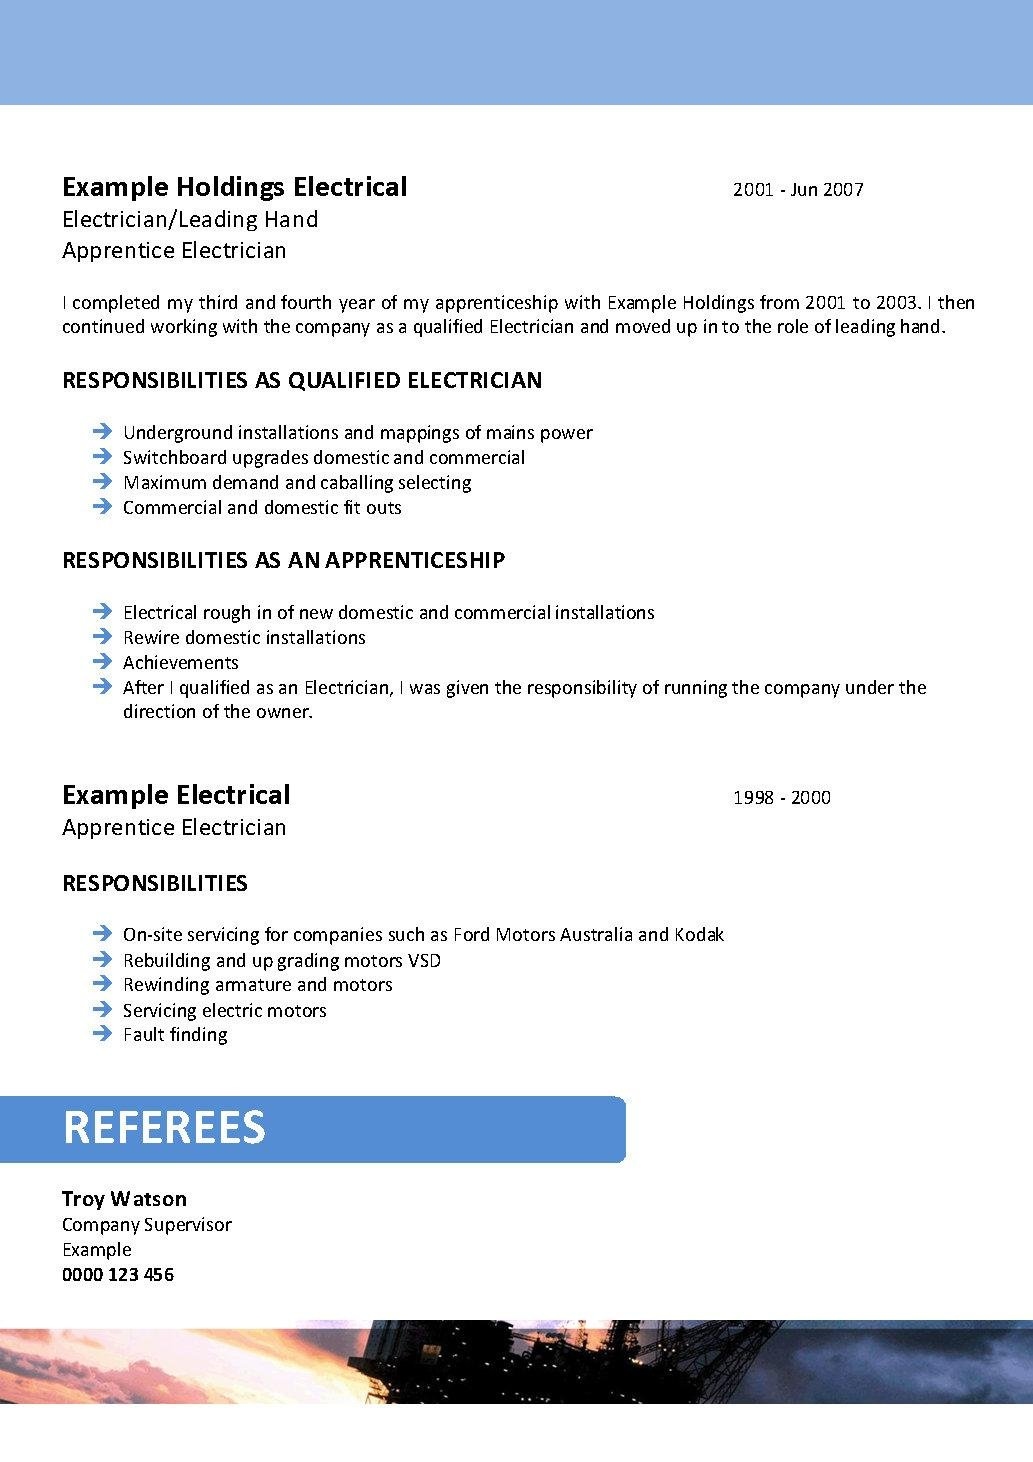 Directional Driller Resume Samples | JobHero